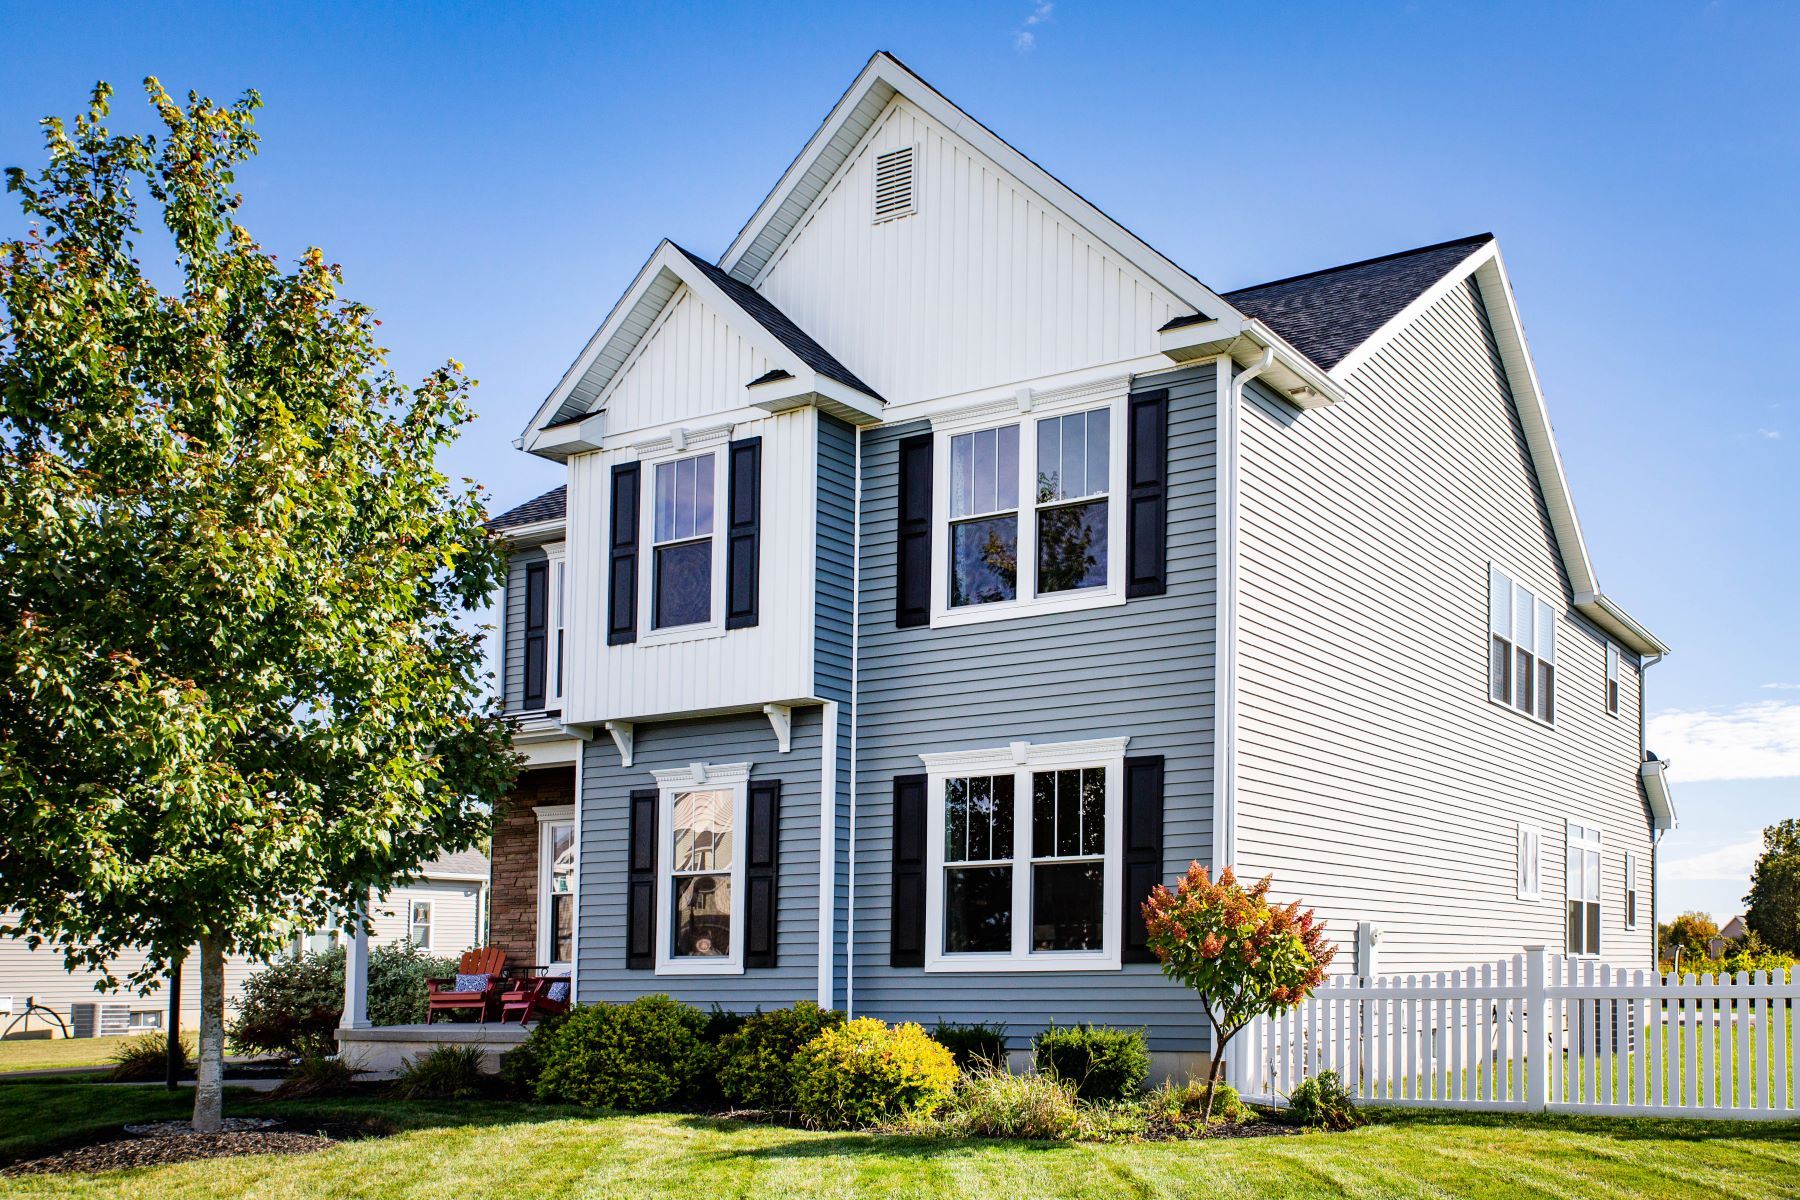 Single Family Homes for Active at Travers Meadows Model Home 12 Coronado Way Malta, New York 12020 United States